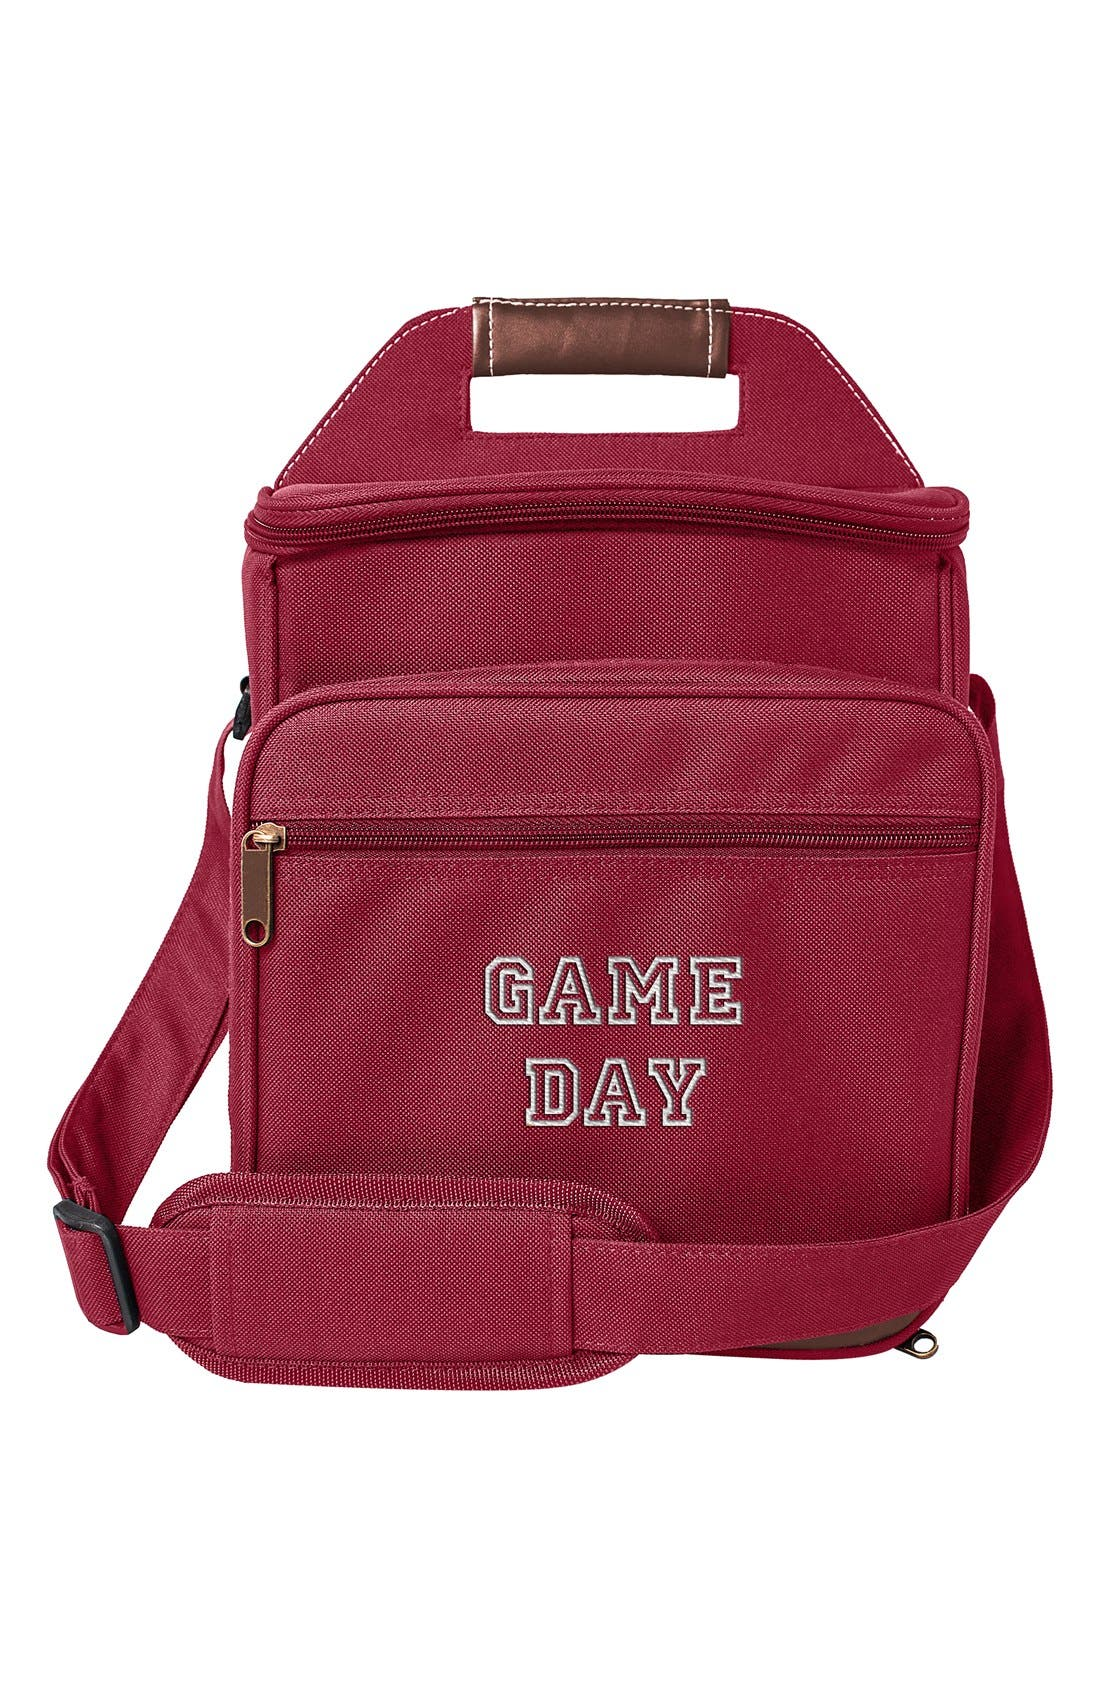 Main Image - Cathy's Concepts 'Game Day' Picnic Cooler Set